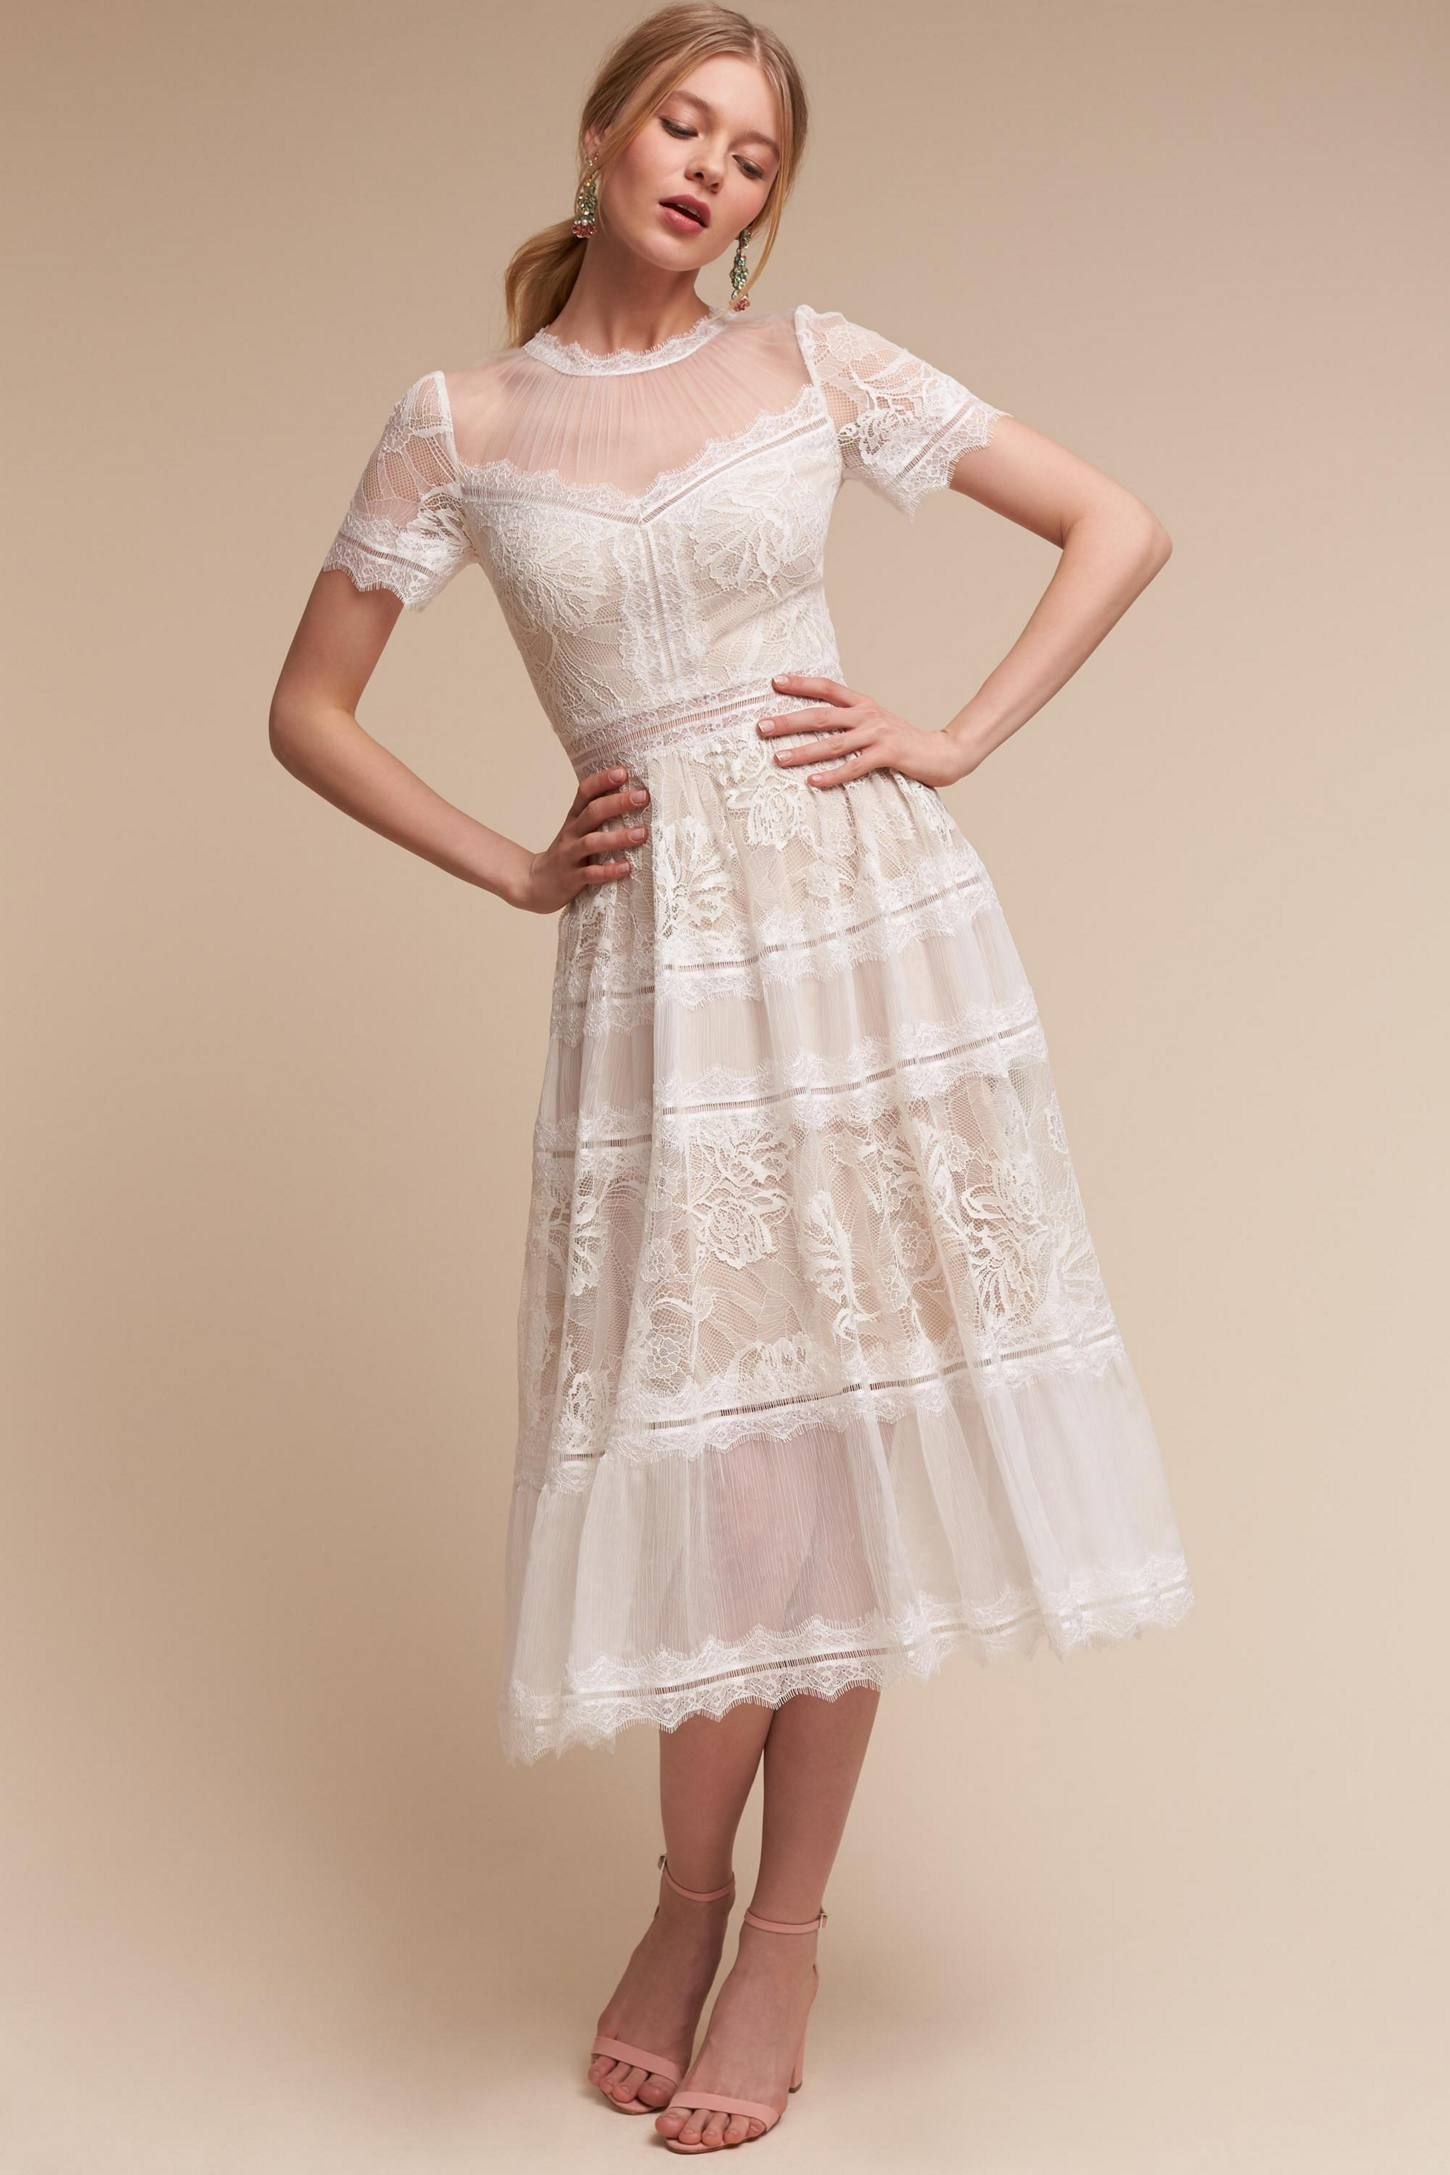 The Saylor Dresore Anthropologie At Today Read Customer Reviews Discover Product Detailore